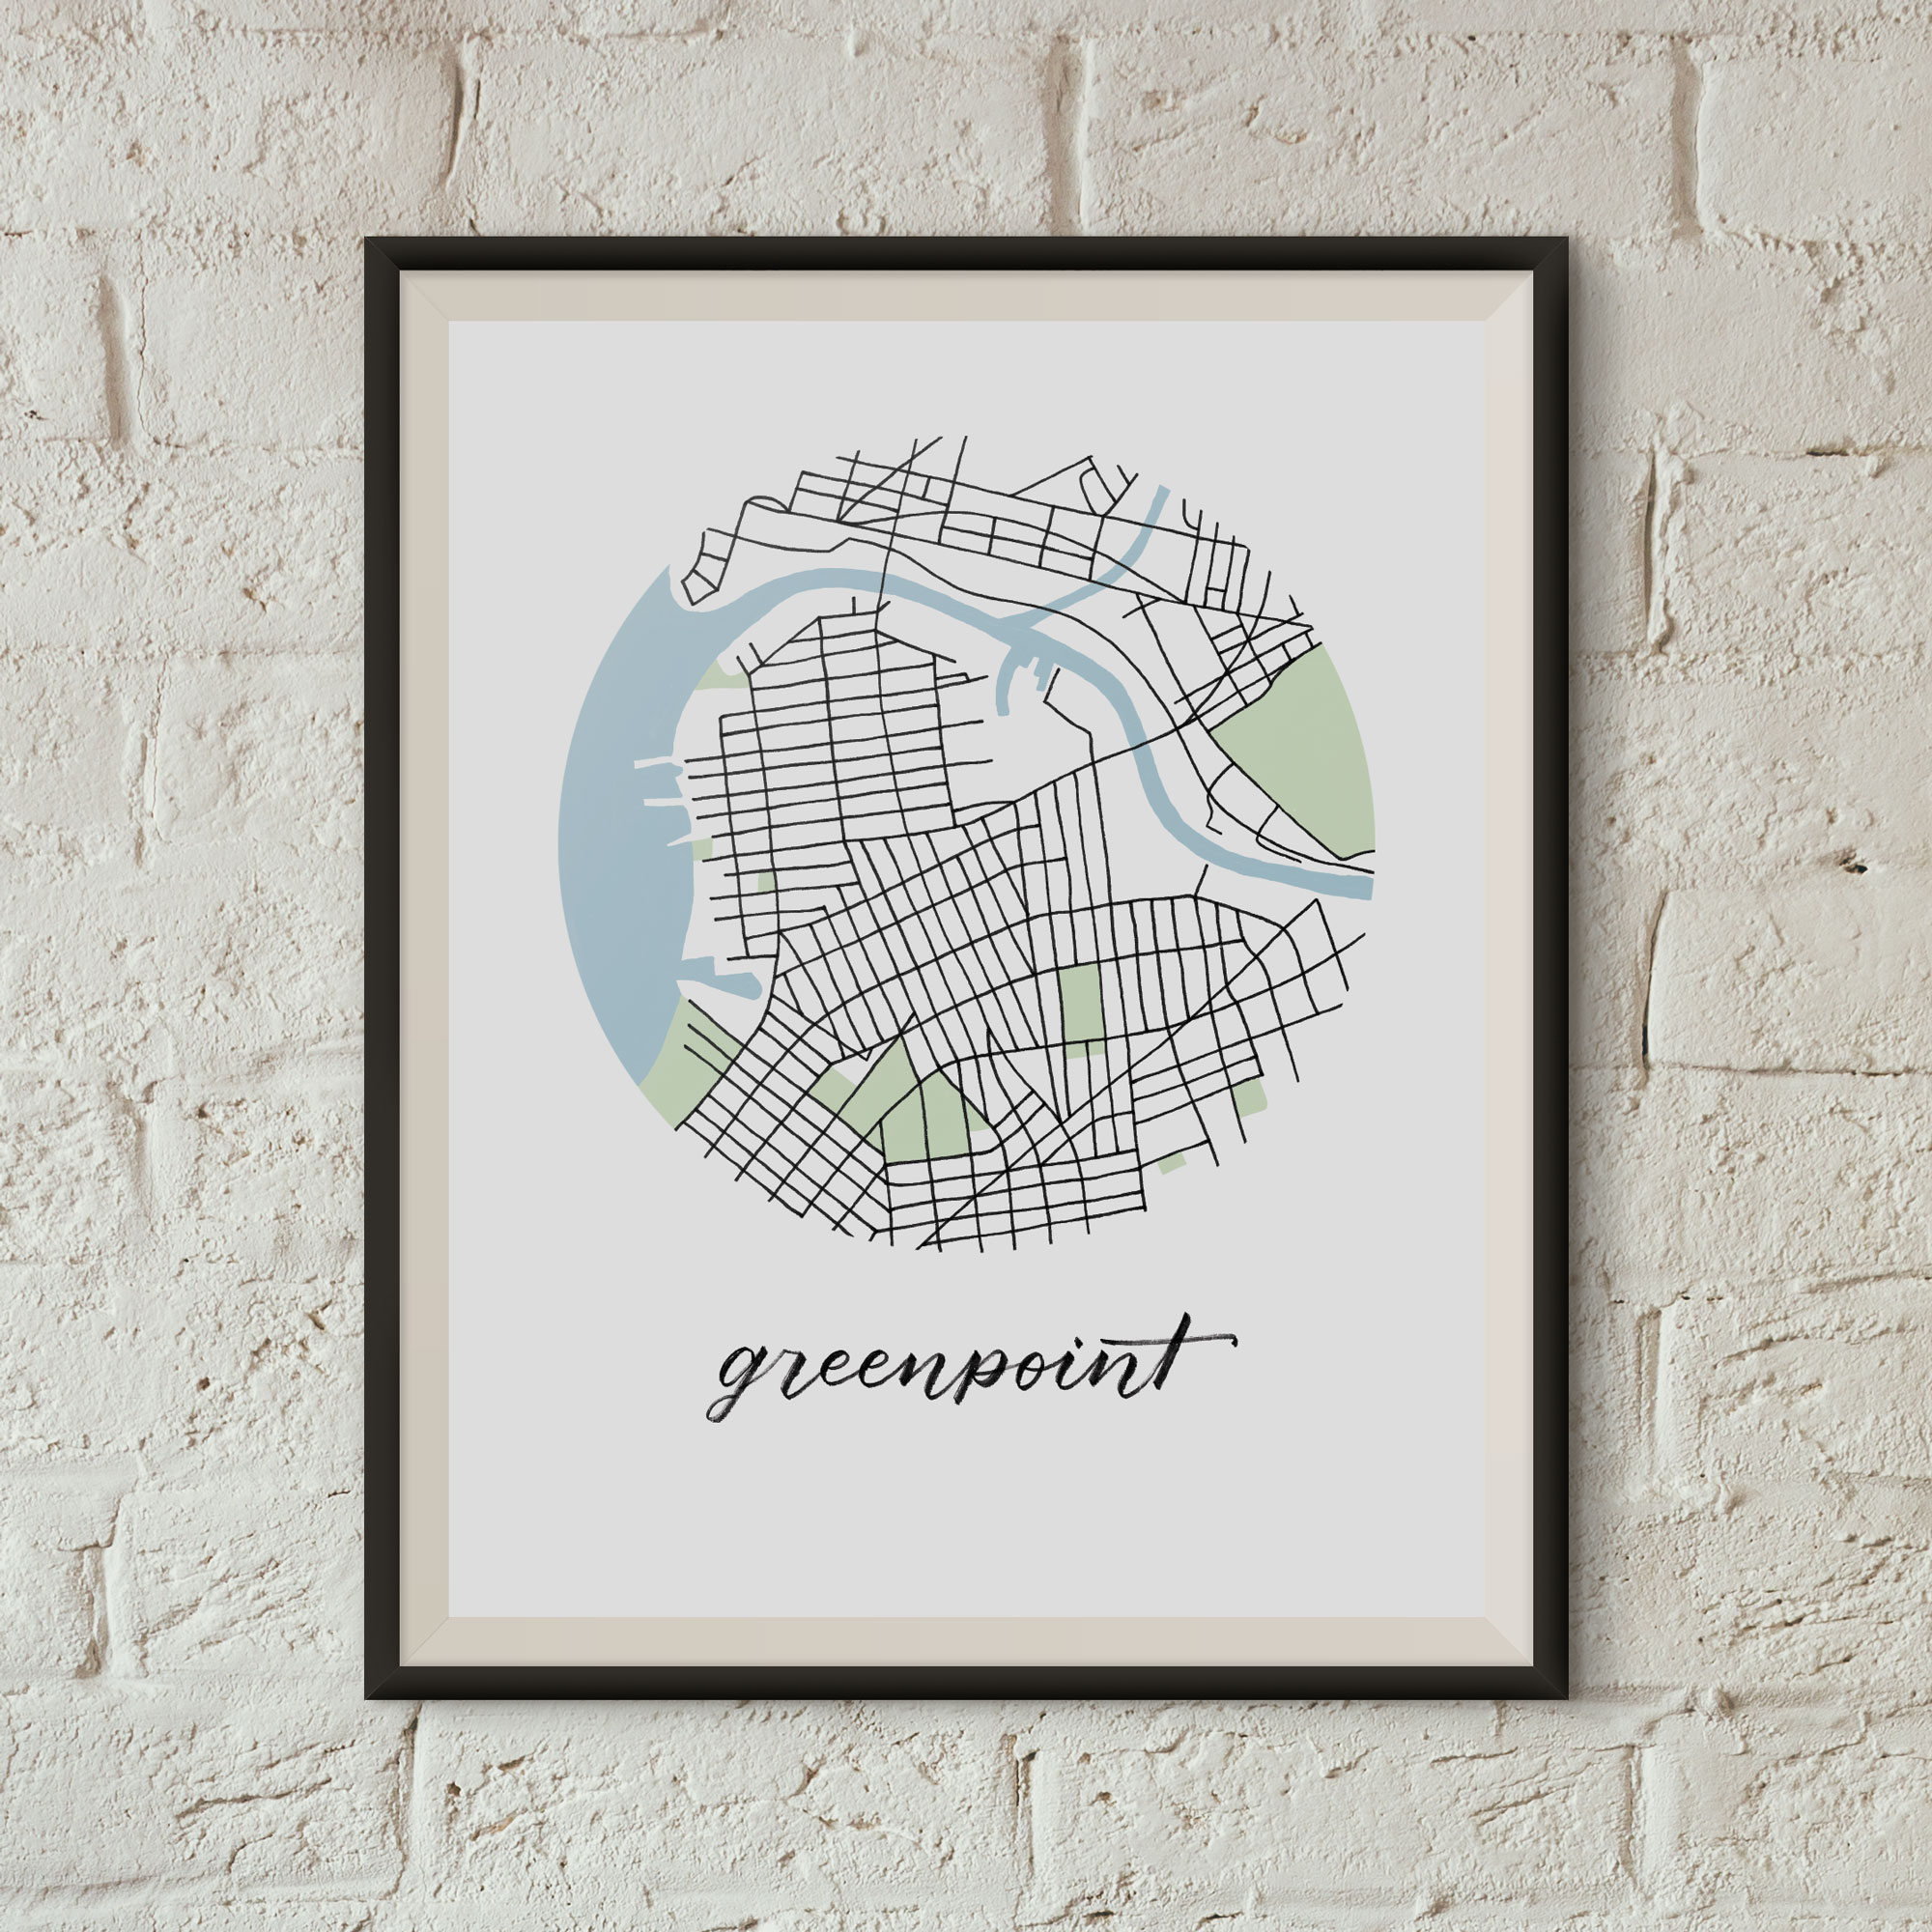 Greenpoint Map Print framed on a white brick wall